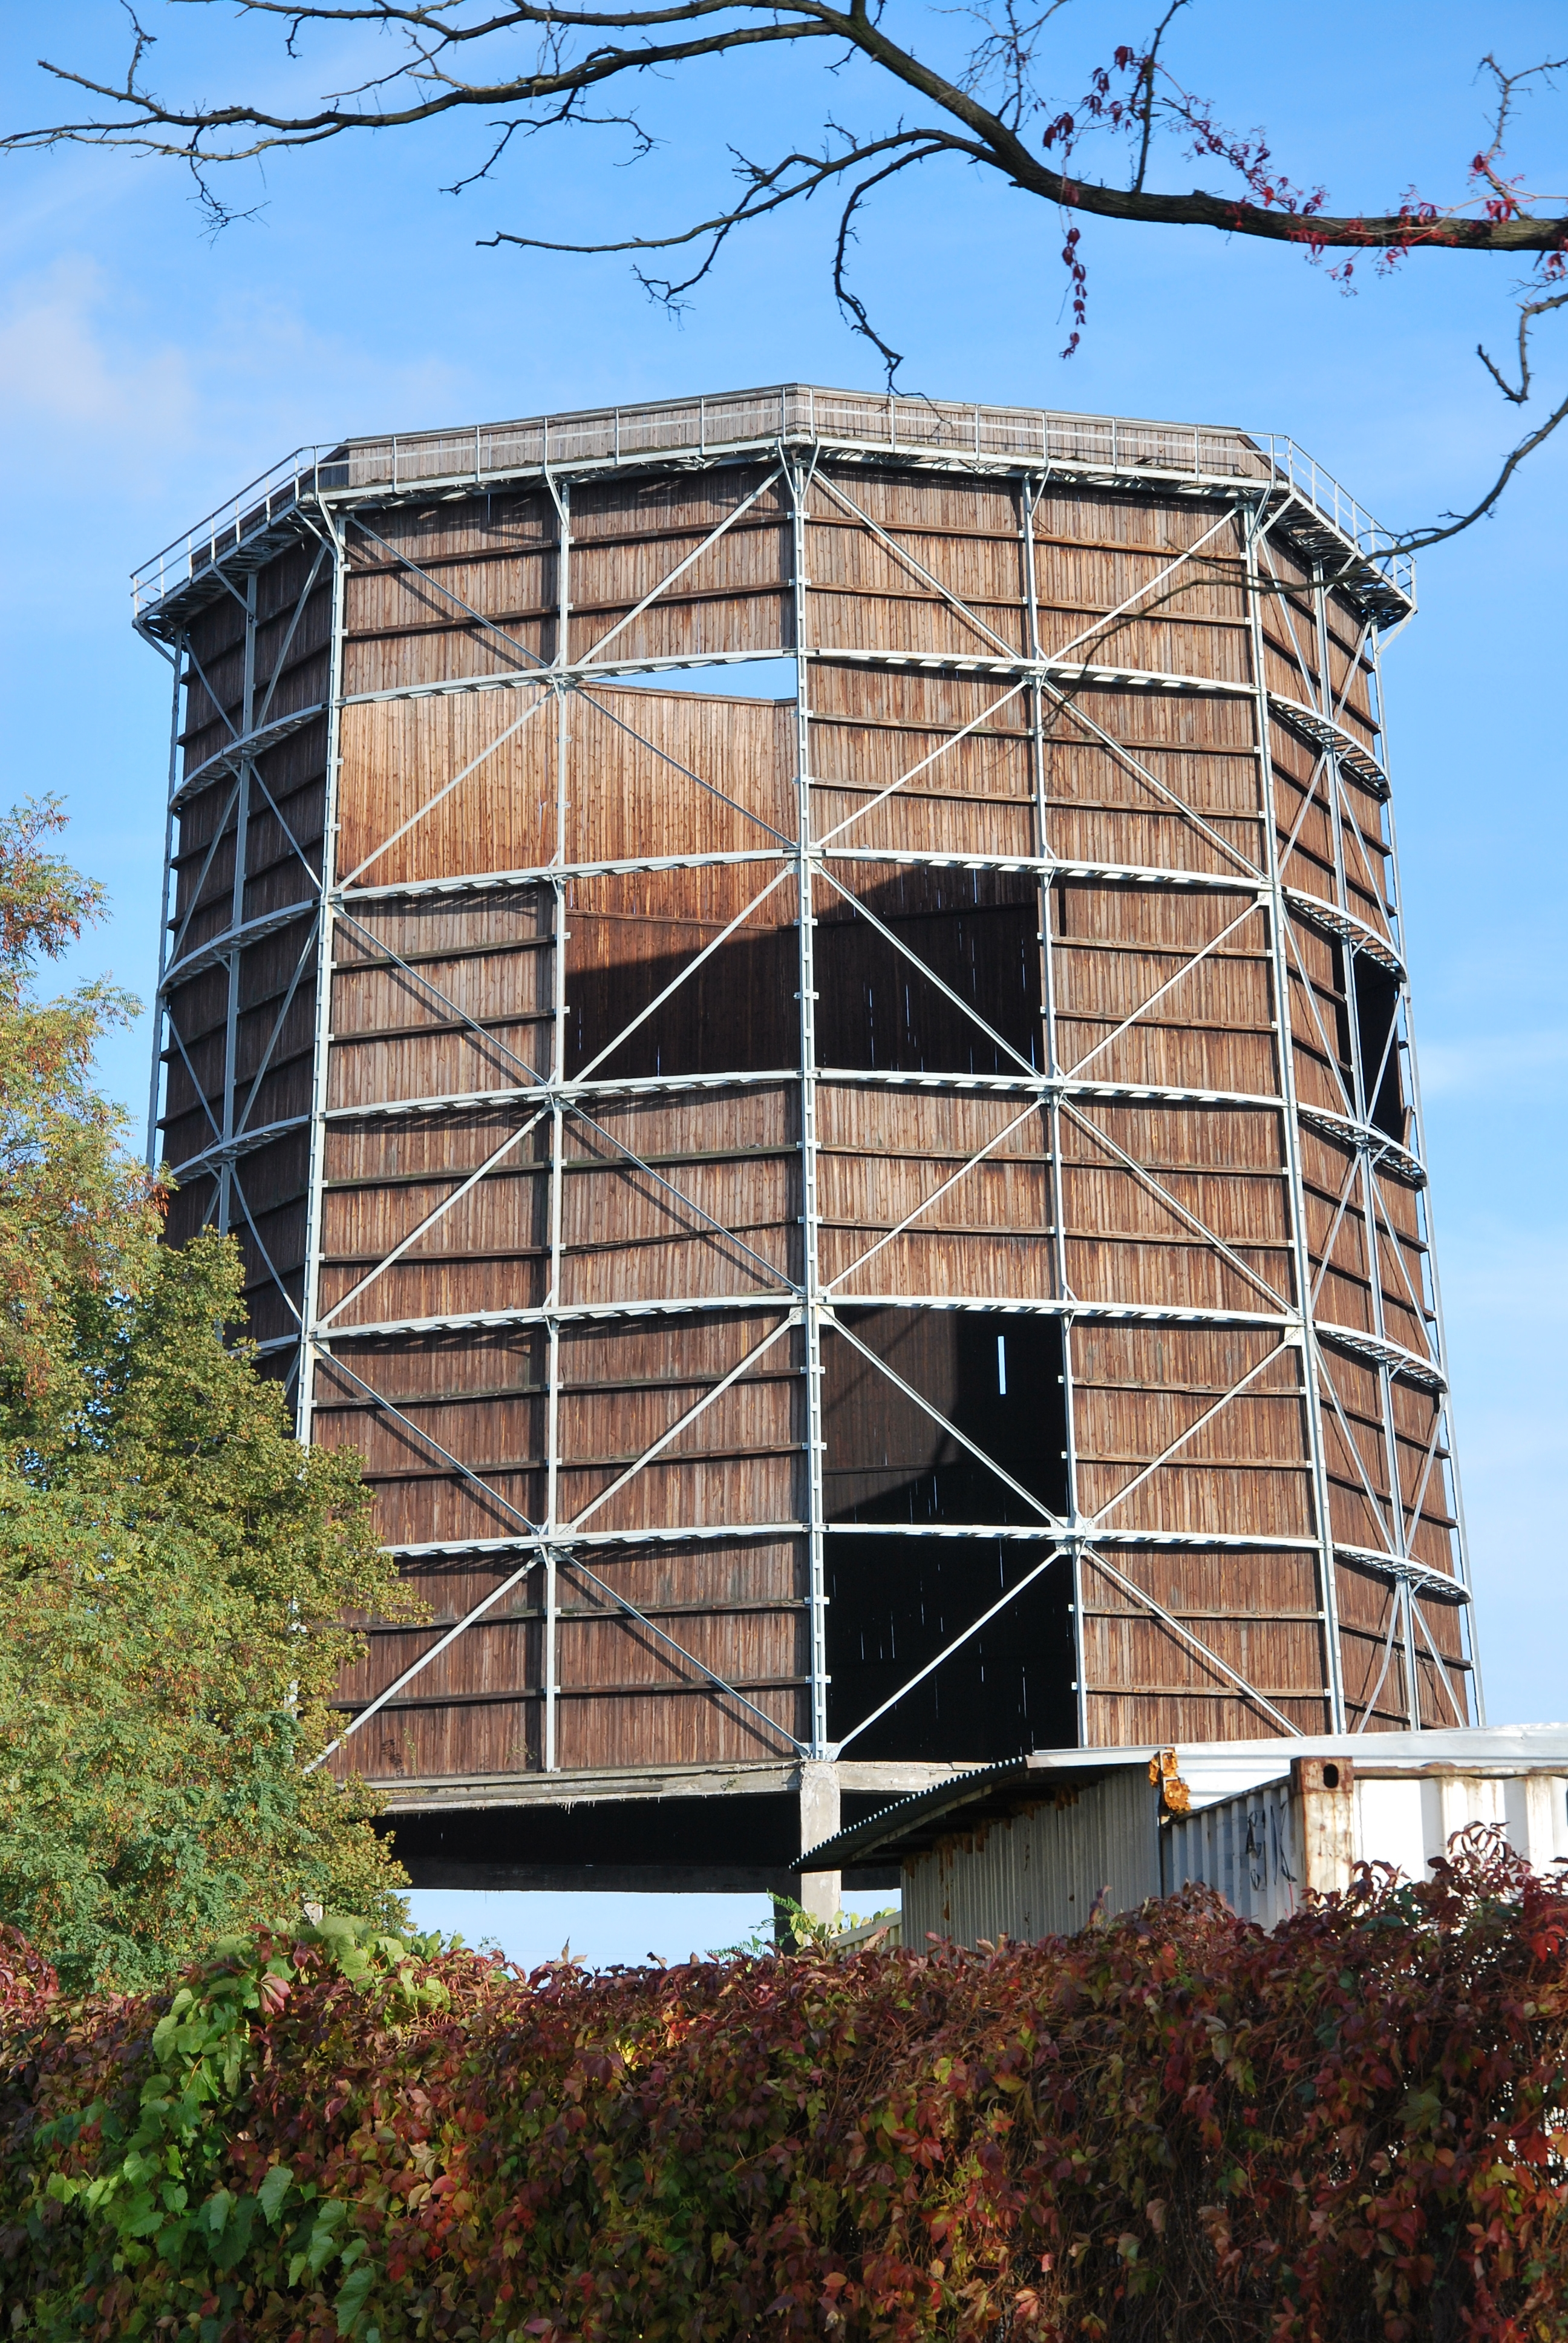 File:Wooden cooling tower, WIMA,